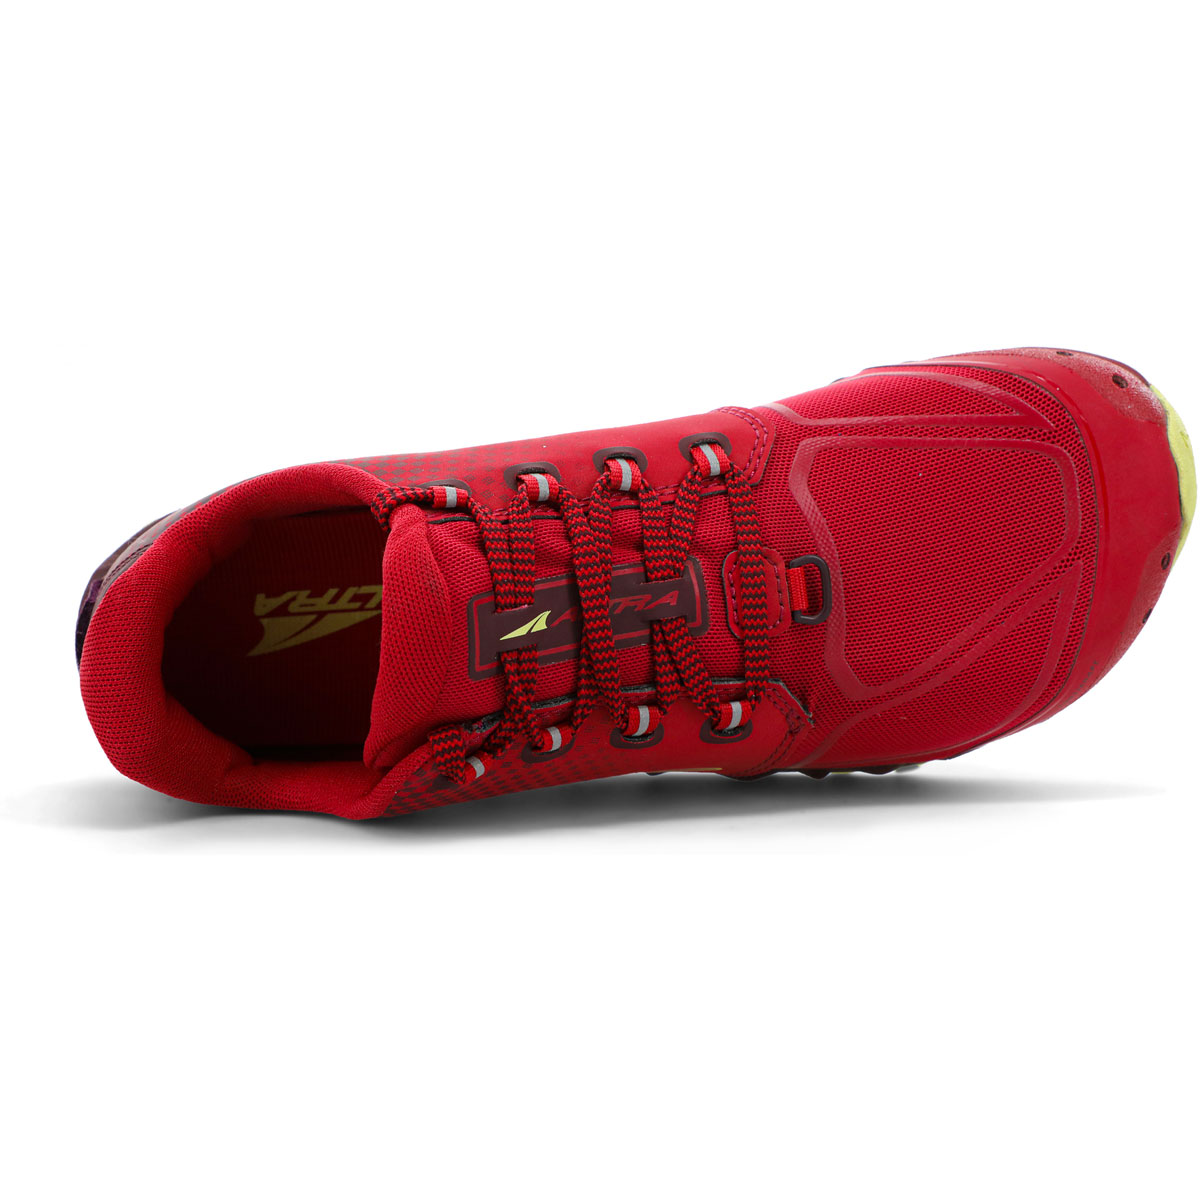 Women's Altra Superior 4.5 Trail Running Shoe - Color: Raspberry - Size: 5.5 - Width: Regular, Raspberry, large, image 4